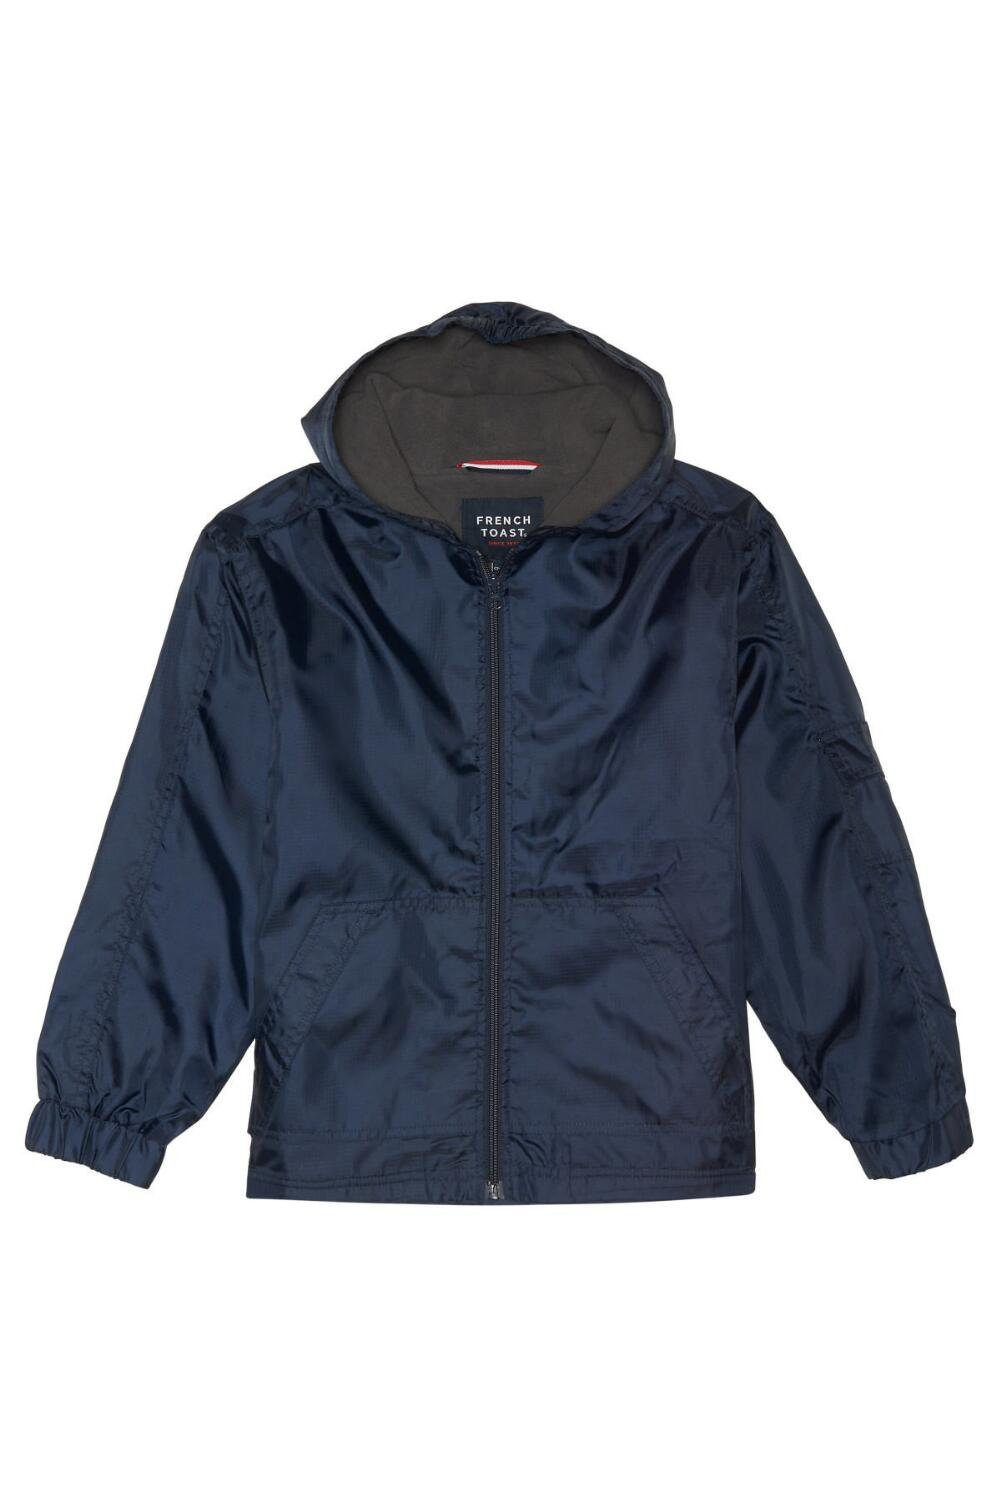 French Toast Little Boys' Transitional Jacket, Navy, S (6/7)